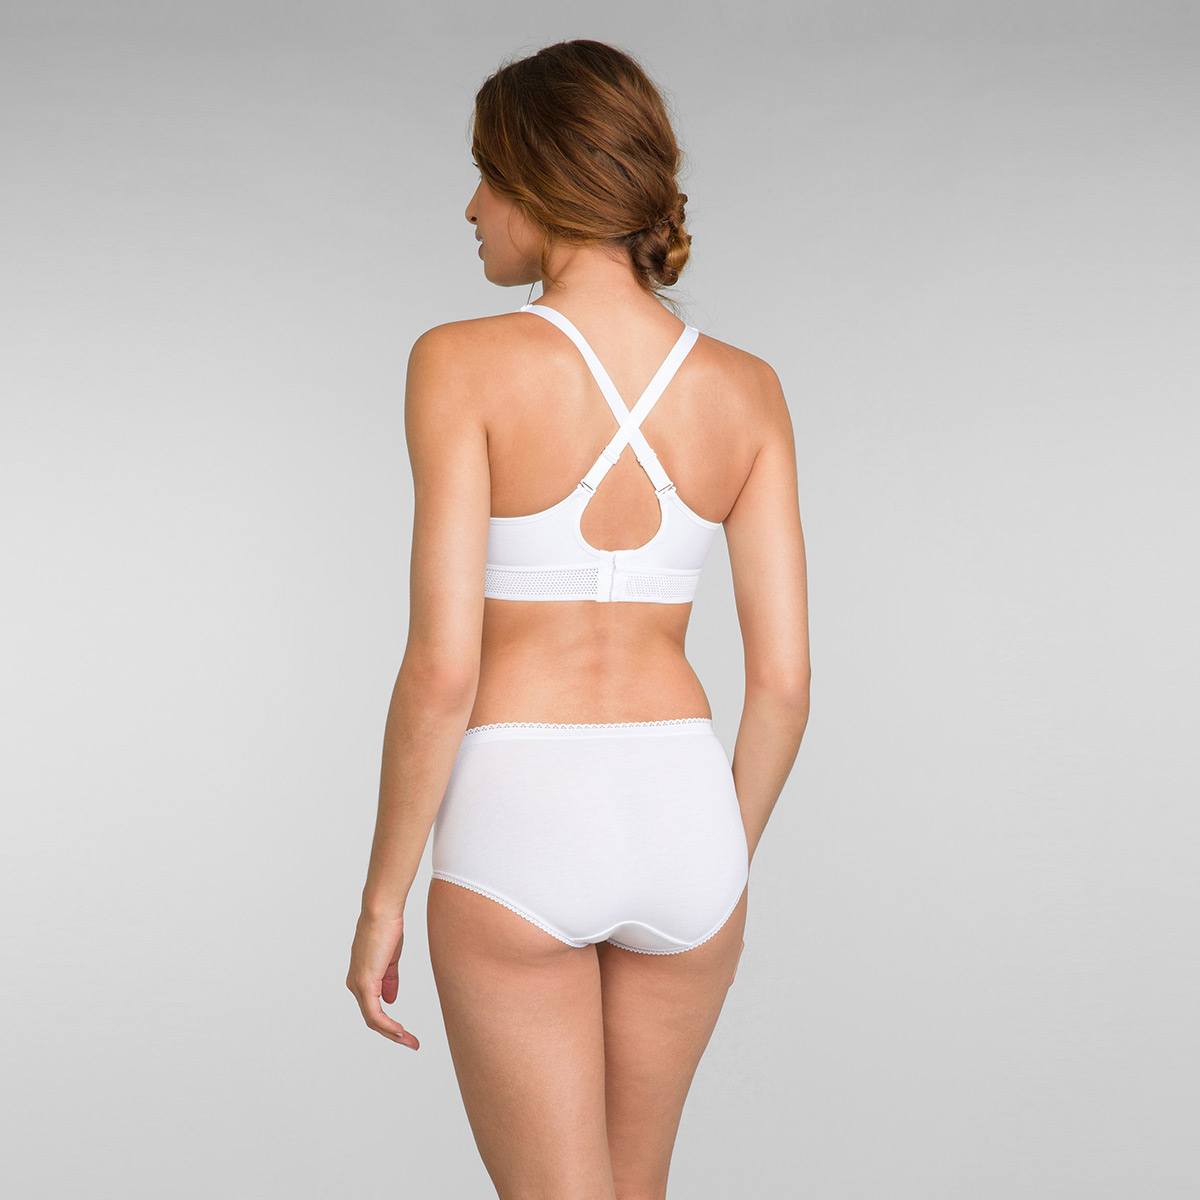 Reggiseno senza ferretto bianco Feel Good Support Cotone, , PLAYTEX